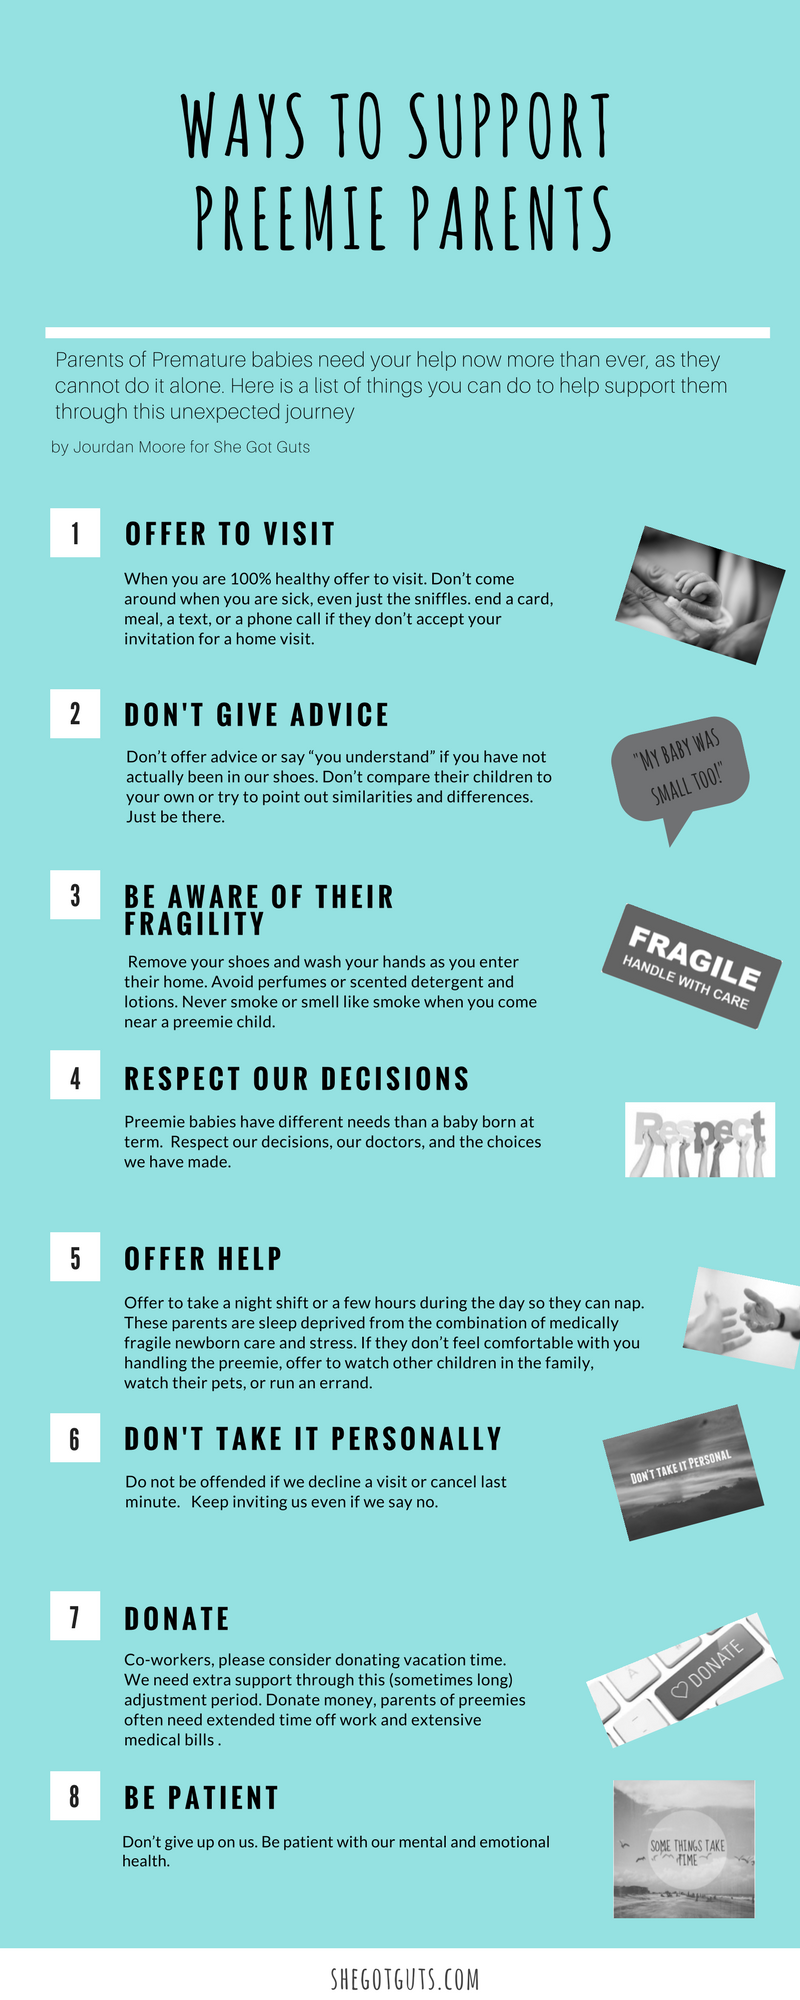 10 ways to support preemie parents.png